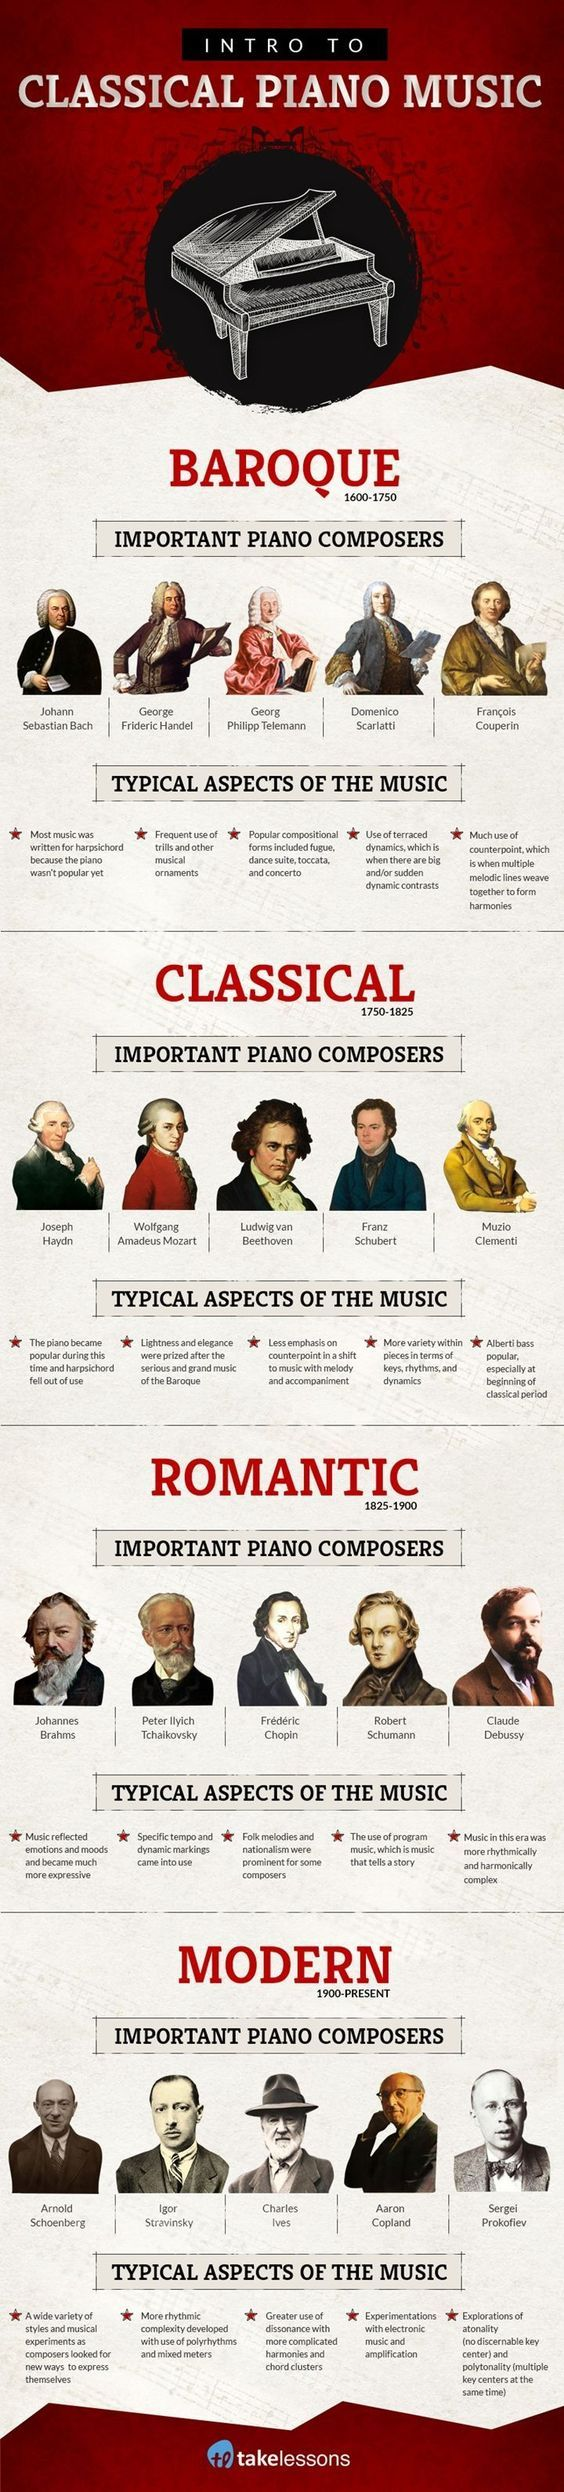 A brief history of classical music